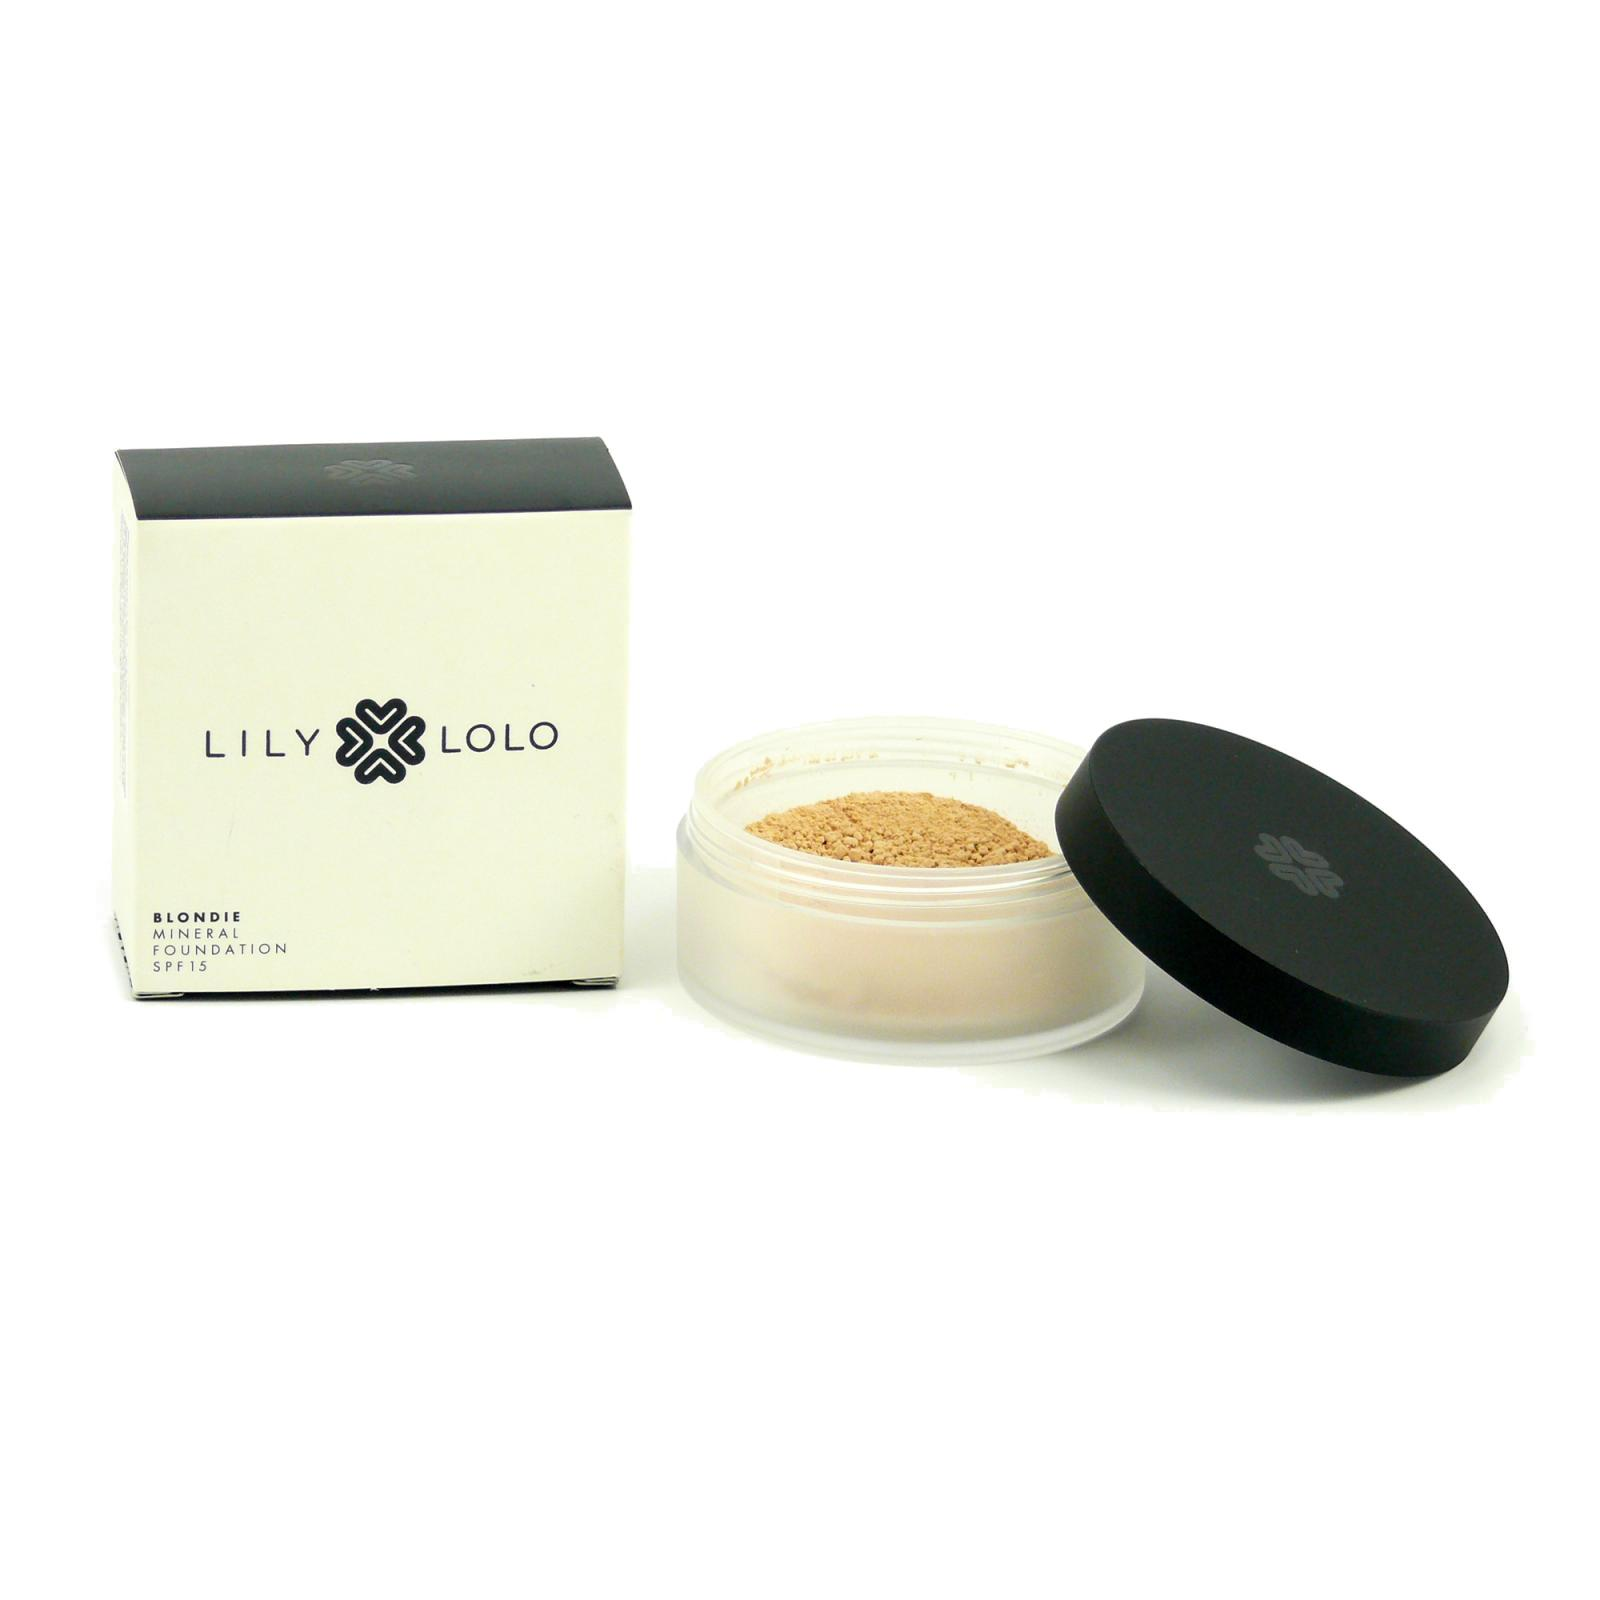 Lily Lolo Mineral Cosmetics Minerální make-up Blondie 10 g